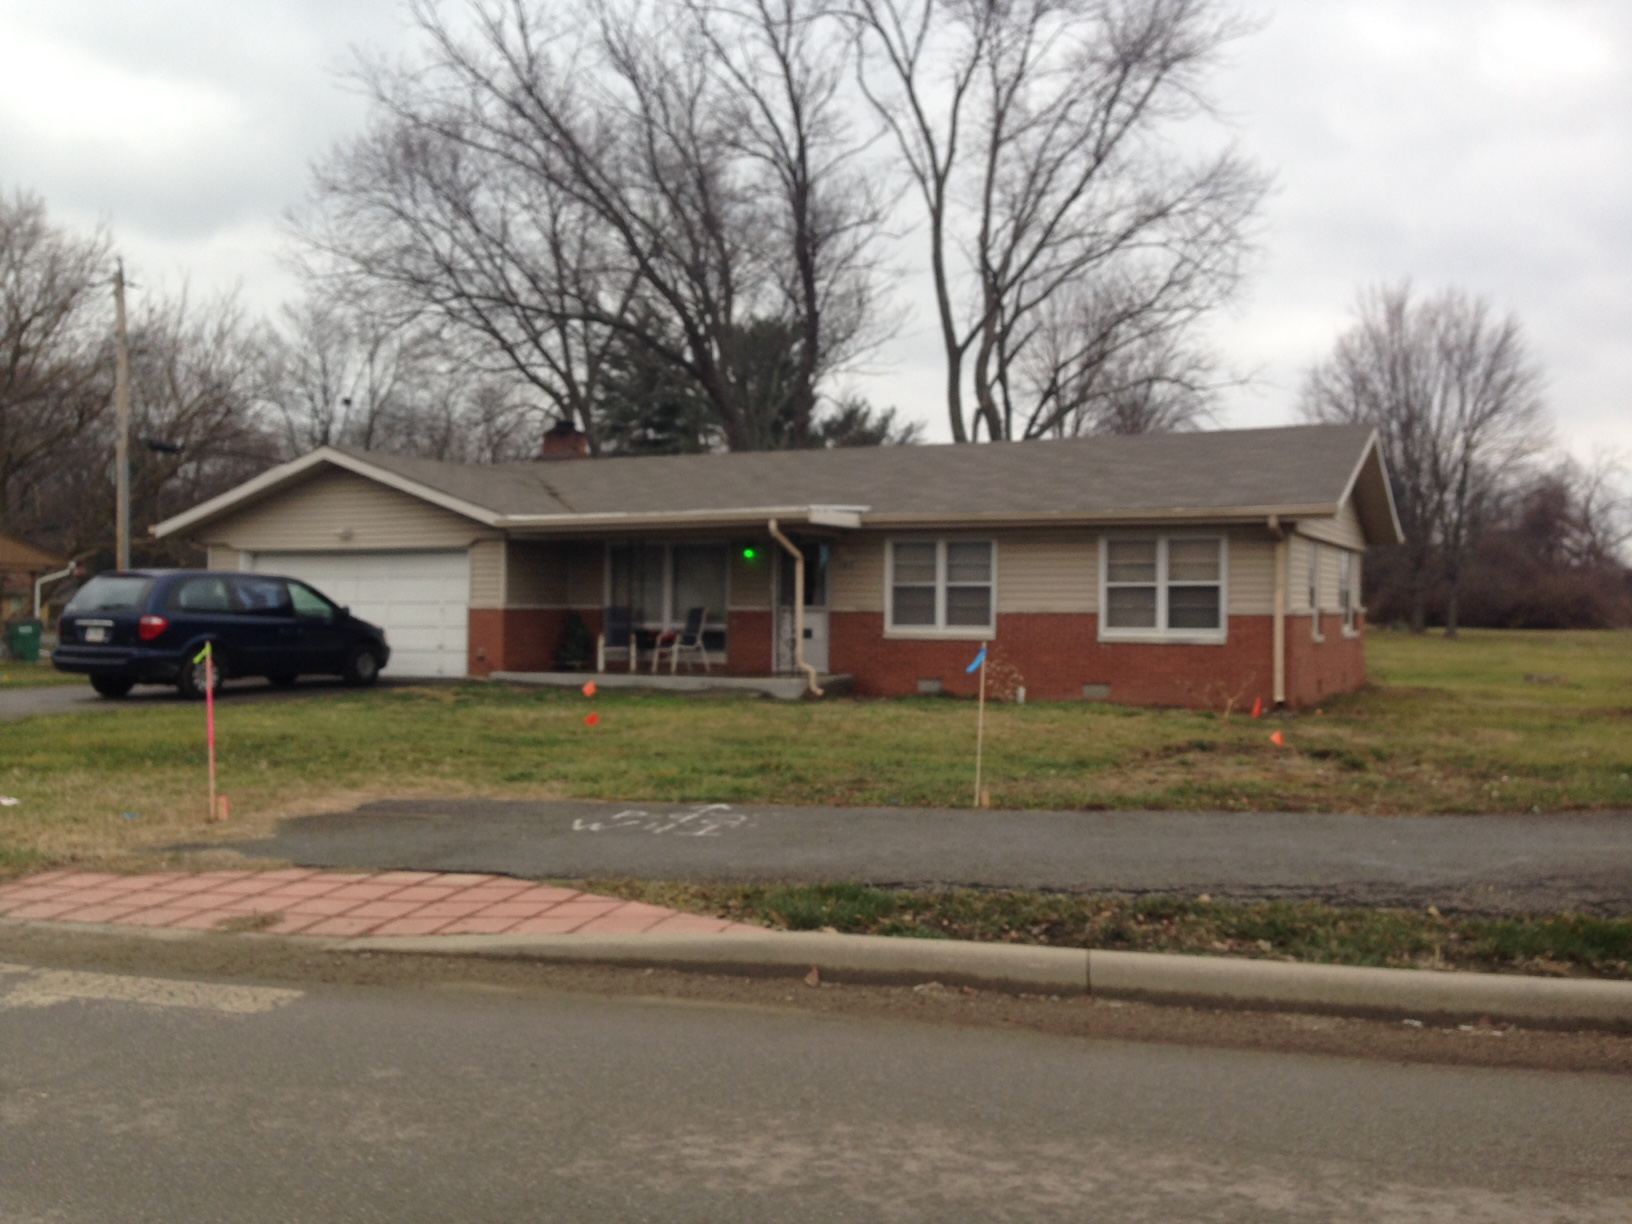 103 East 106th Street, Indianapolis, Indiana 46280